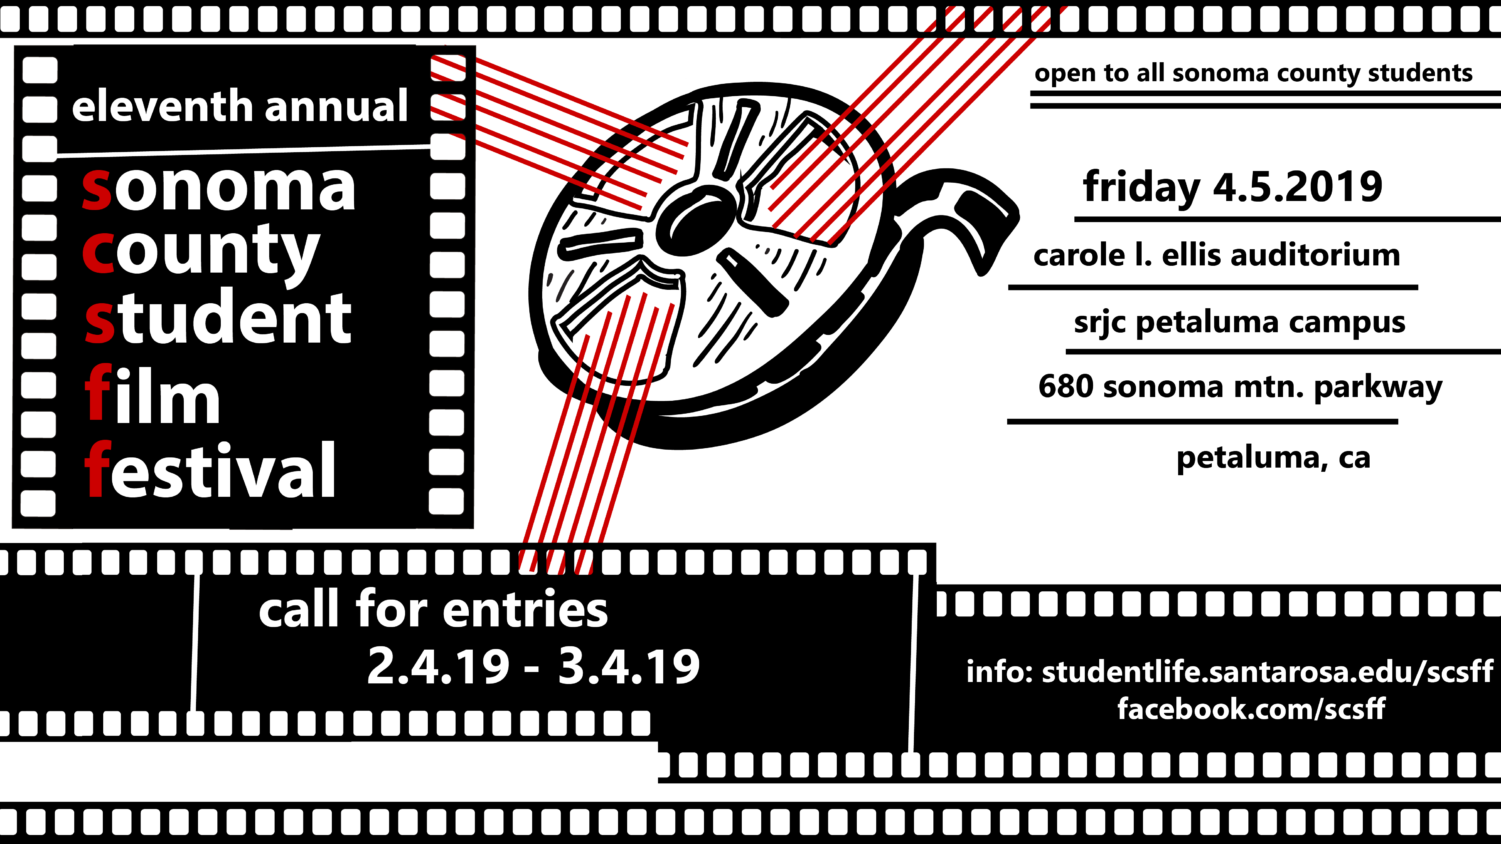 Any Sonoma County student is welcome to submit an entry to the 11th Annual Sonoma County Student Film Festival.